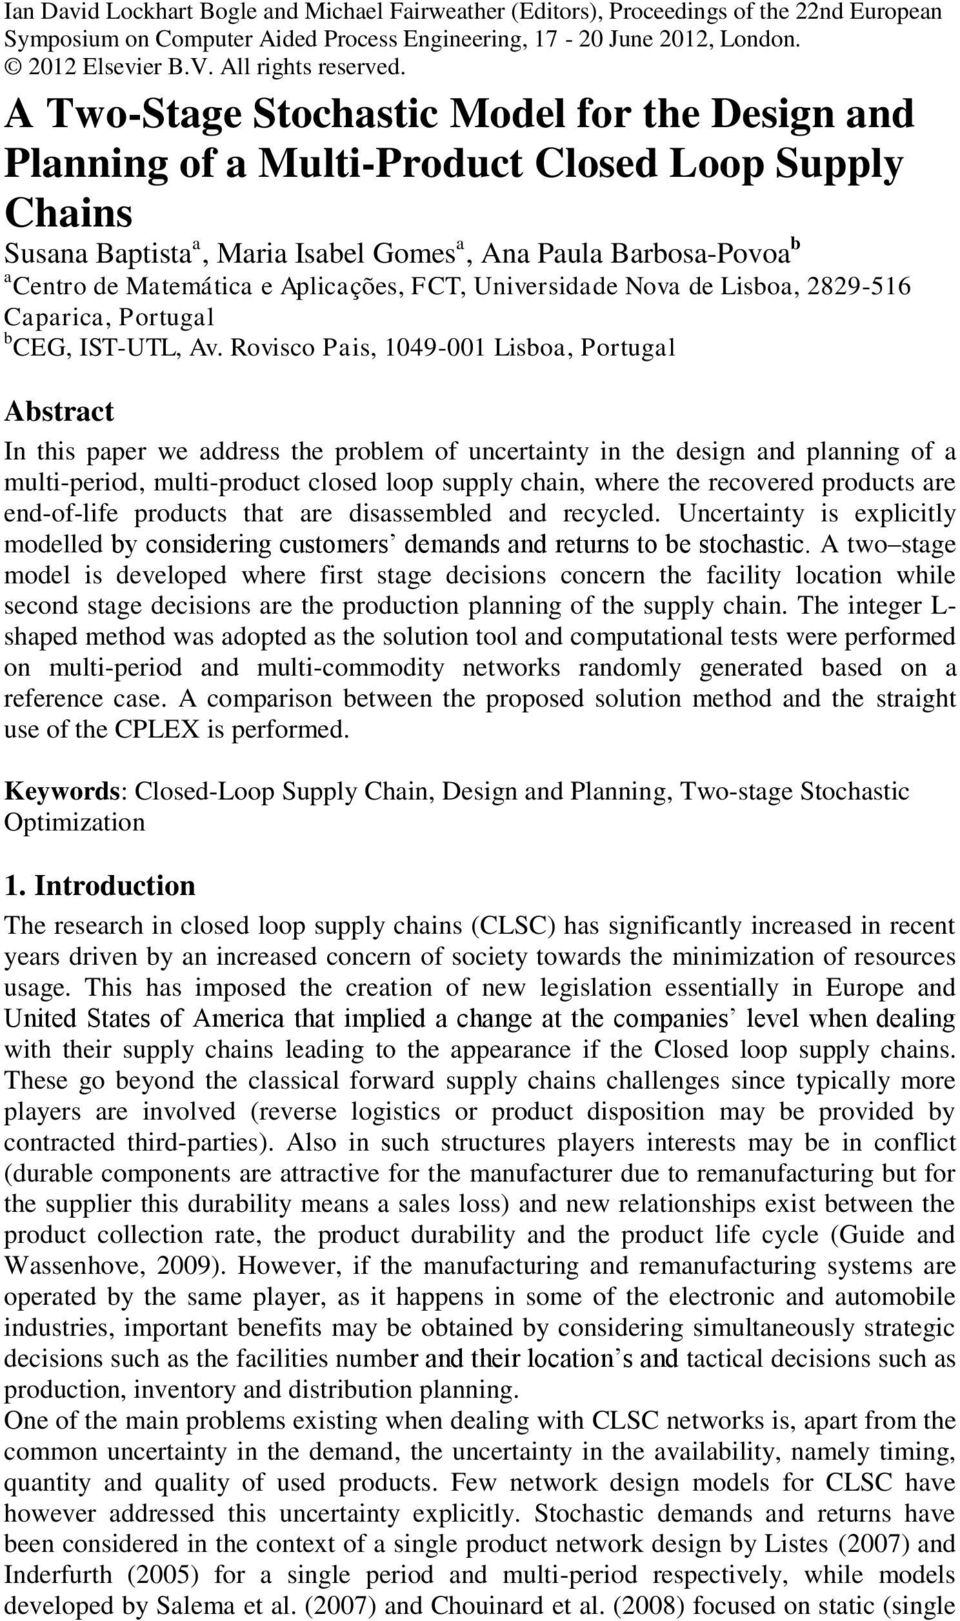 A Two-Stage Stochastic Model for the Design and Planning of a Multi-Product Closed Loop Supply Chains Susana Baptista a, Maria Isabel Gomes a, Ana Paula Barbosa-Povoa b a Centro de Matemática e